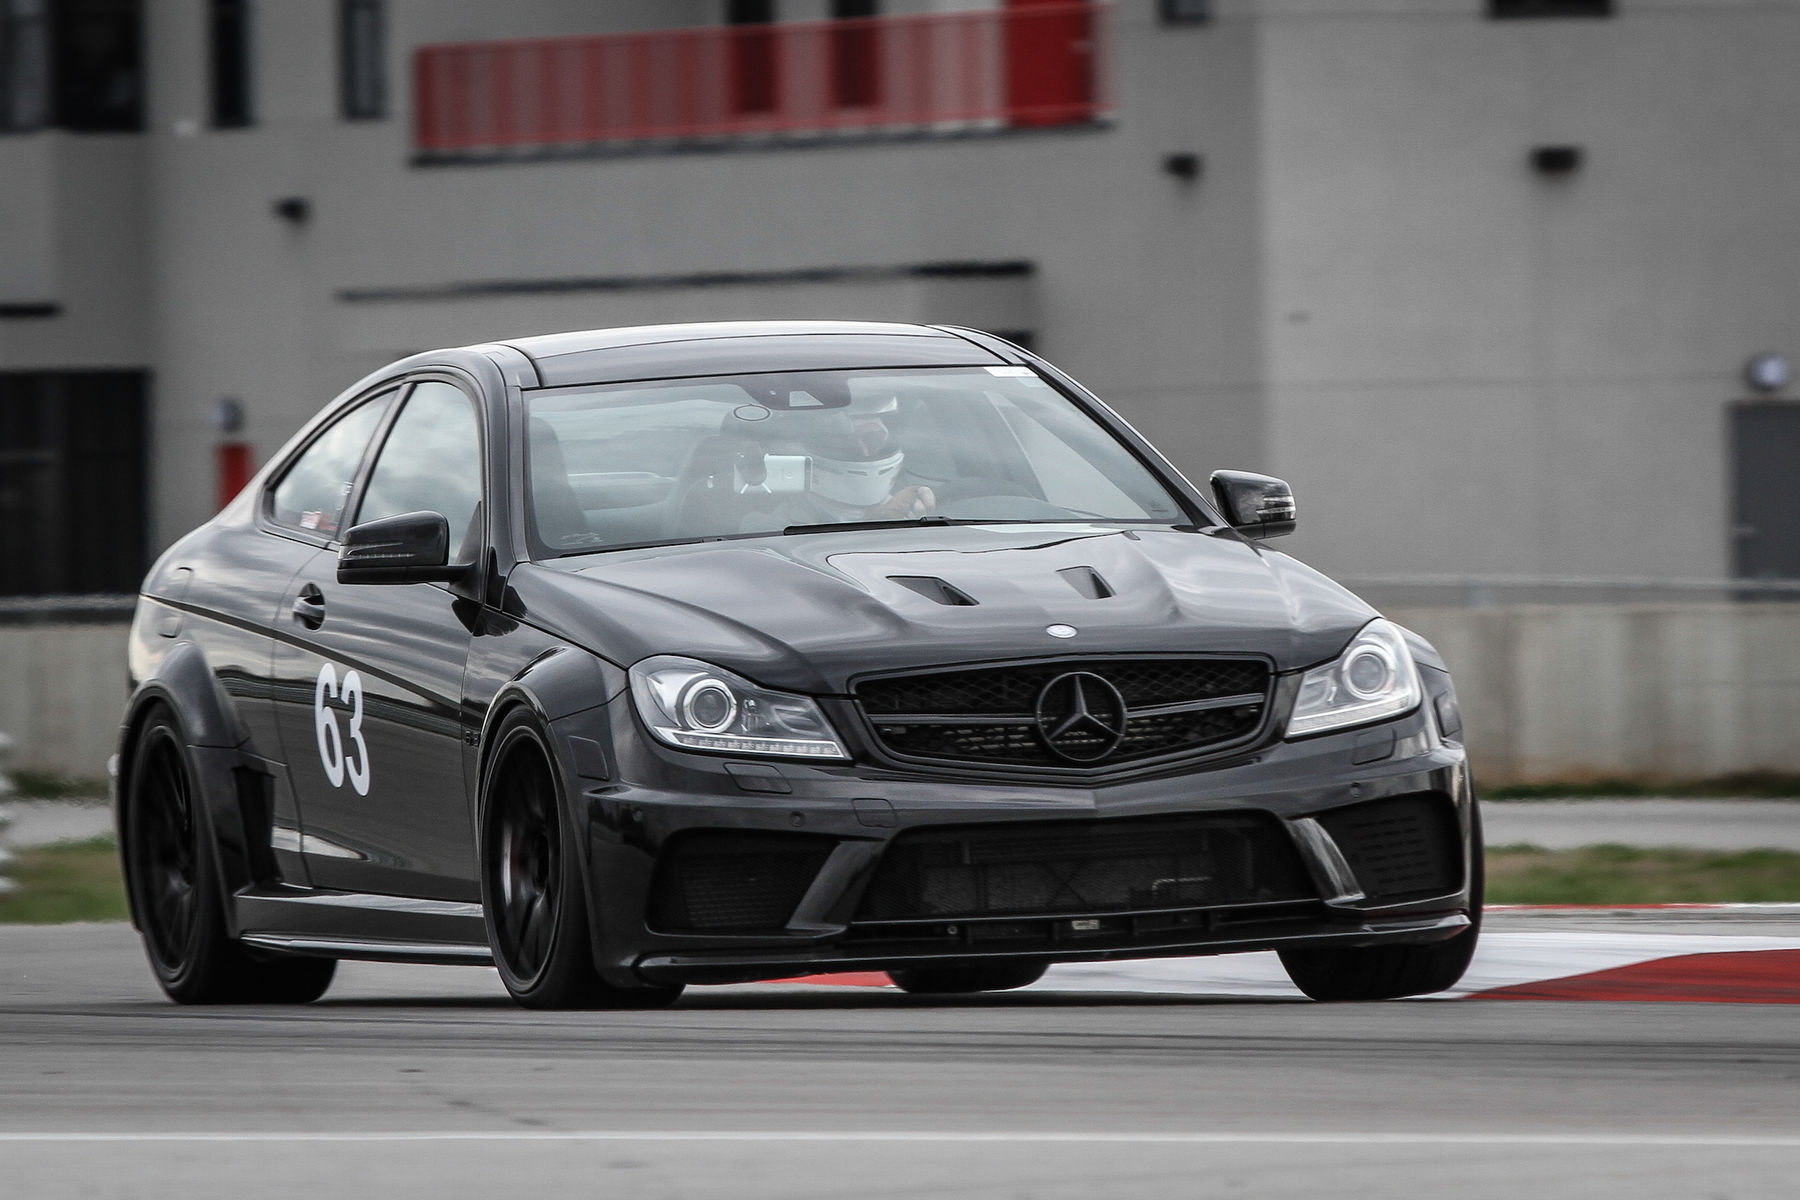 2014 Mercedes-Benz C63 AMG | Bernhard Weber's Mercedes AMG C63 Coupe on Forgeline One Piece Forged Monoblock GA1R Open Lug Cap Edition Wheels